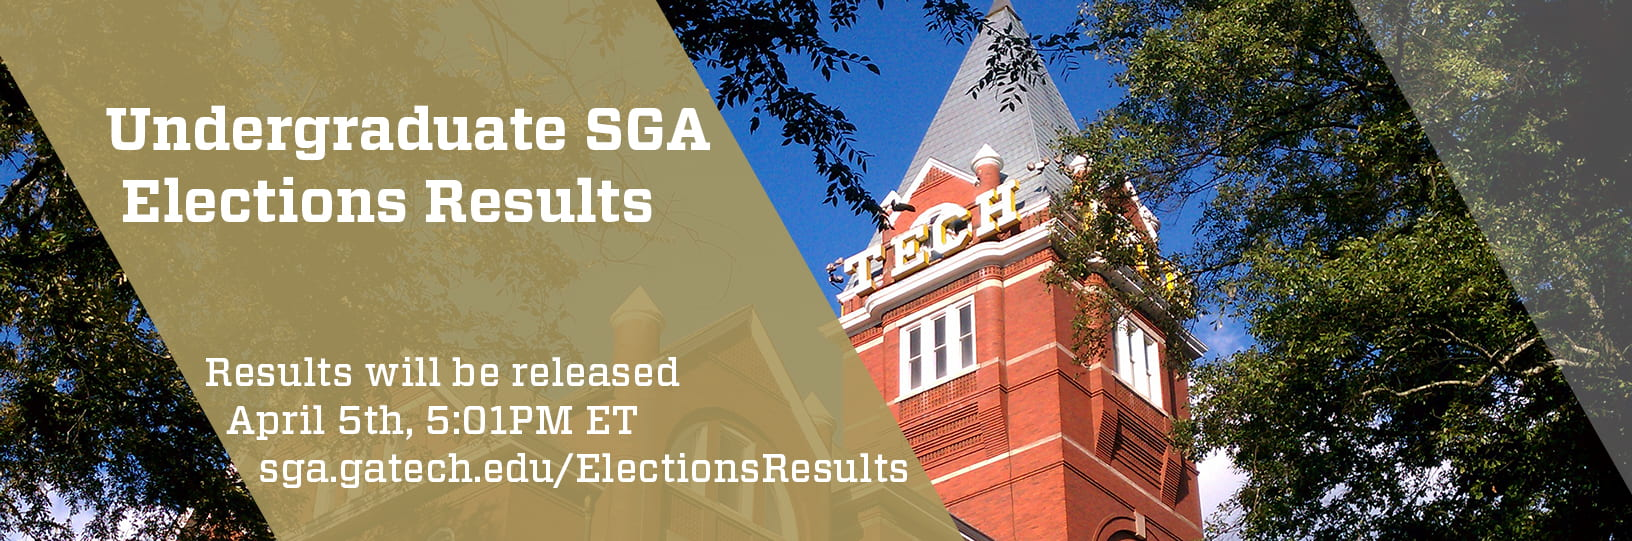 Undergraduate SGA Elections Results will be released April 5th, 5:01PM Eastern Time.